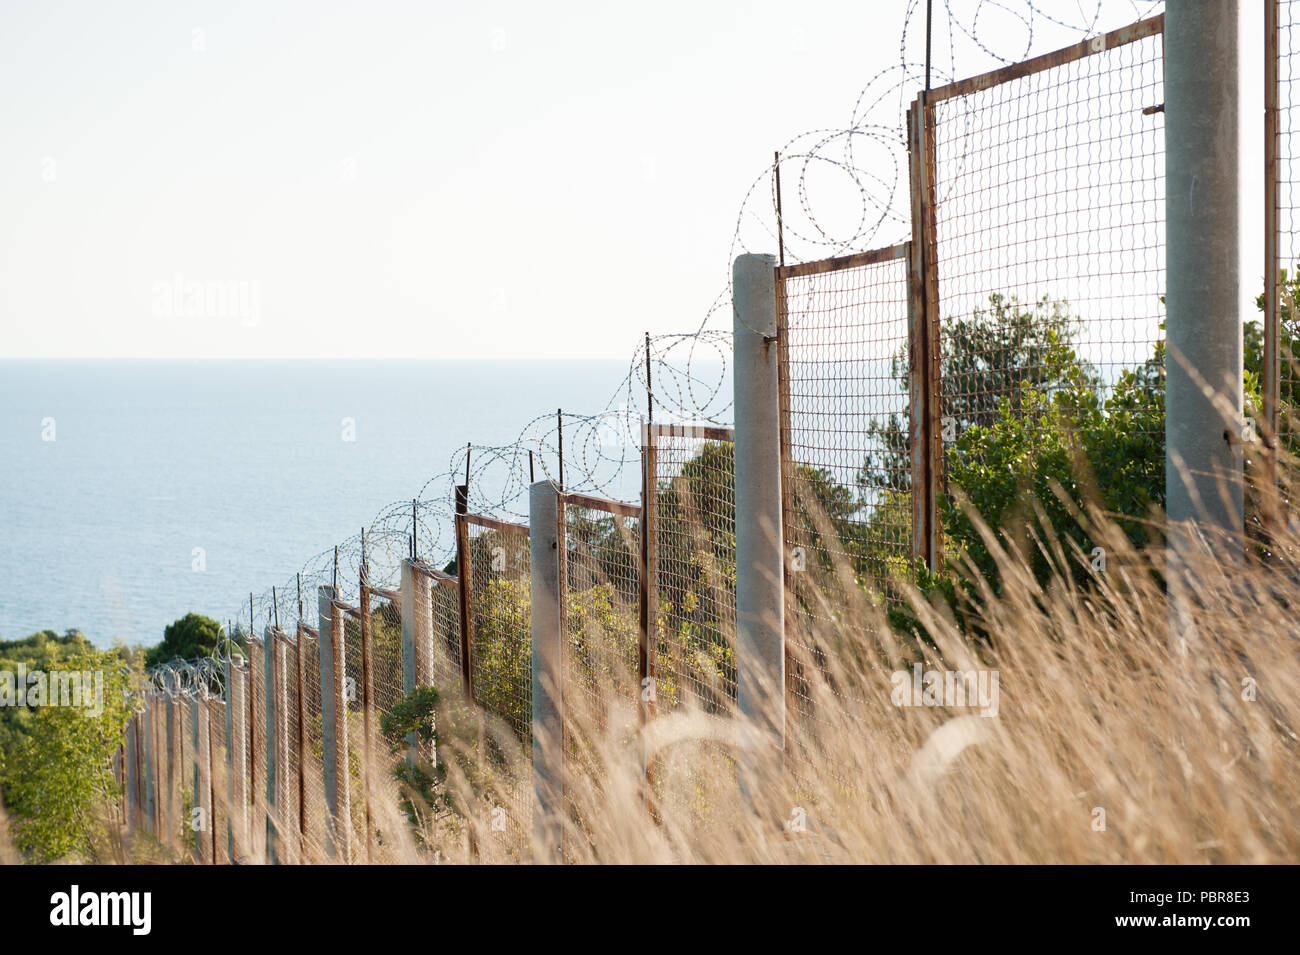 state border razor barbed wire and fence along sea shore and forest danger zone Stock Photo